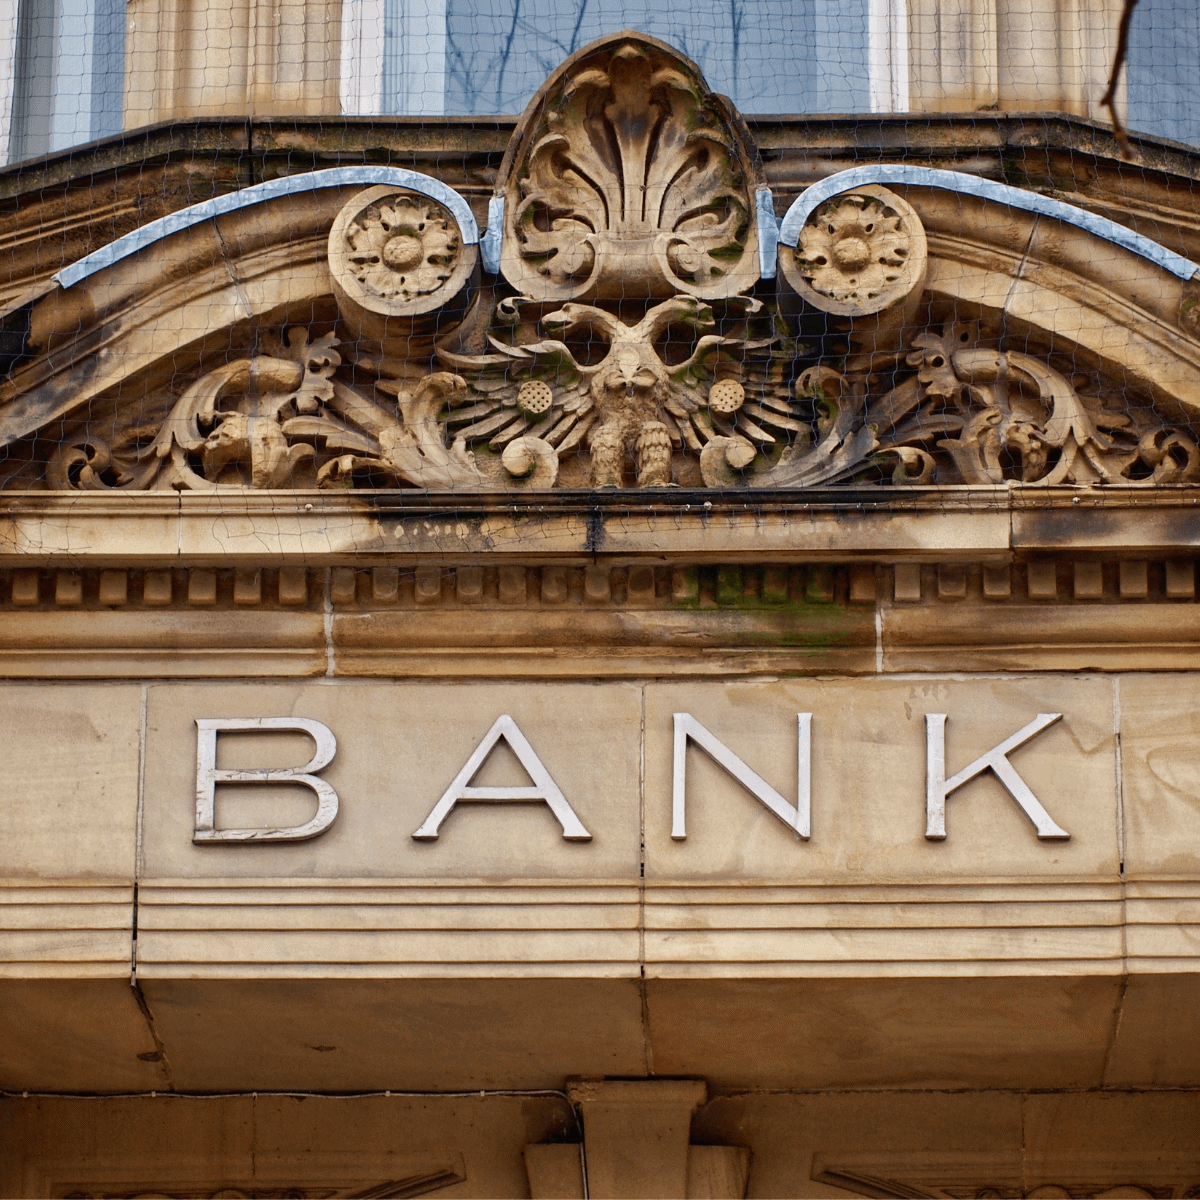 How Do Banks Prey On The Poor?